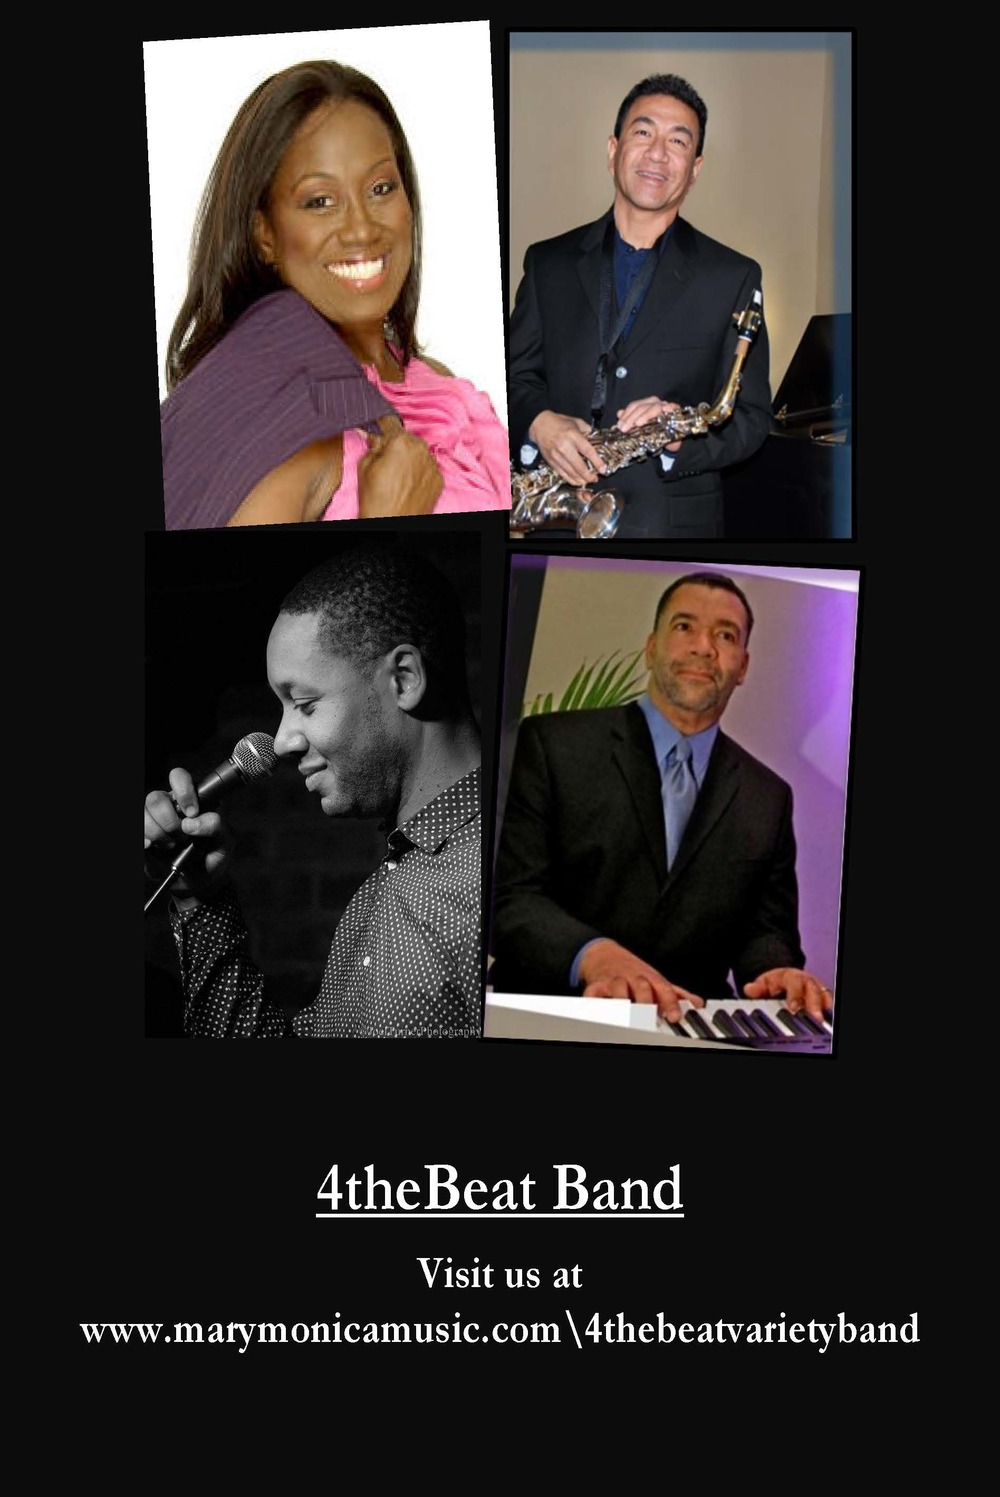 4theBeat Band Pic with Carl and Jia.jpg